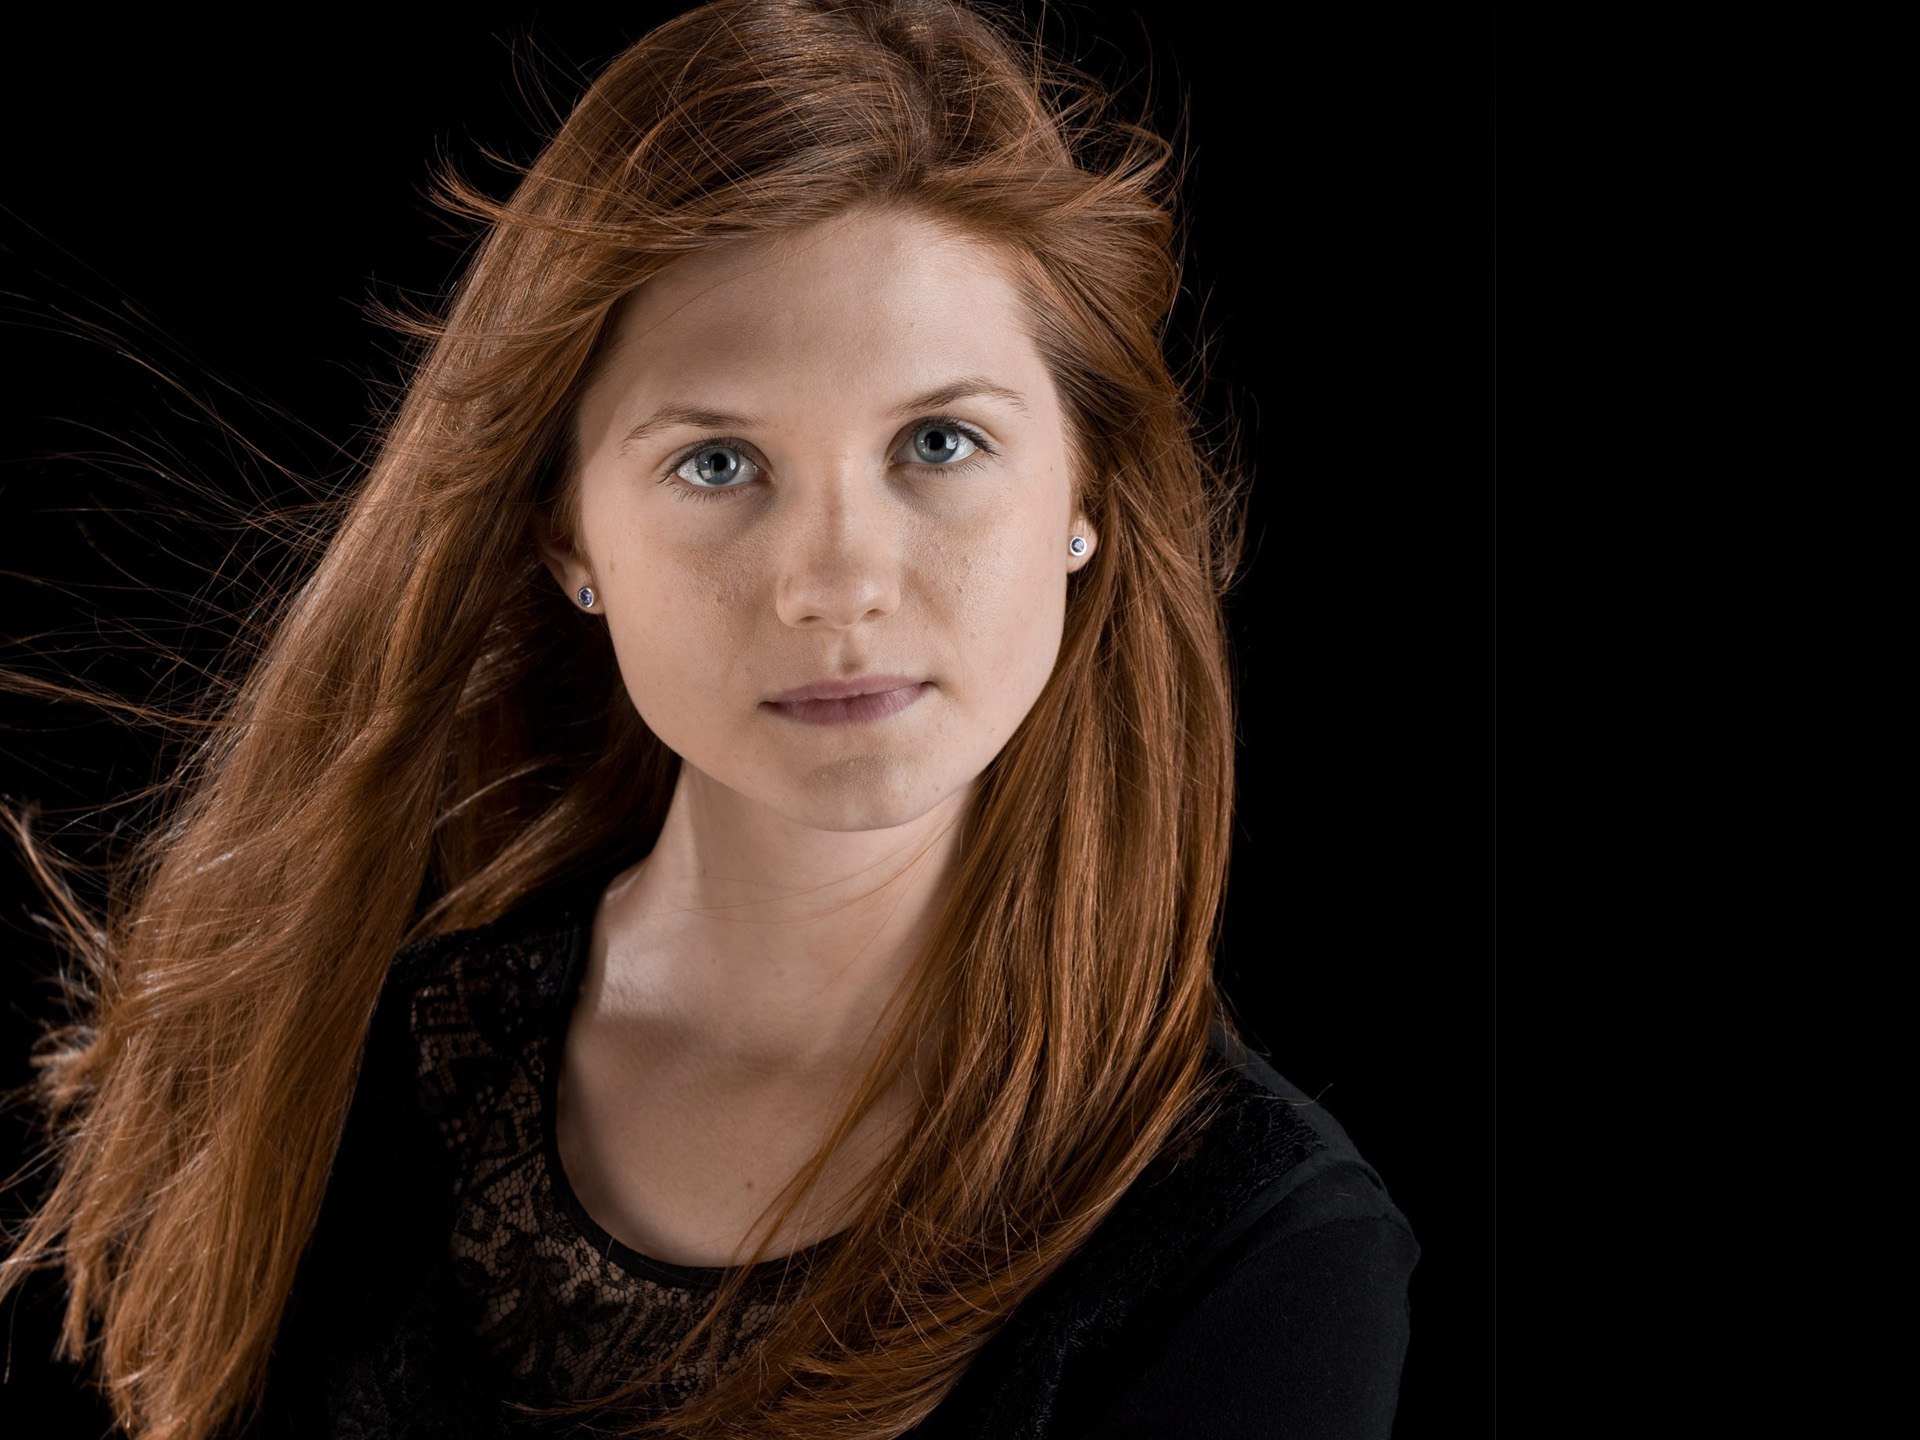 HD Wallpapers Bonnie Wright